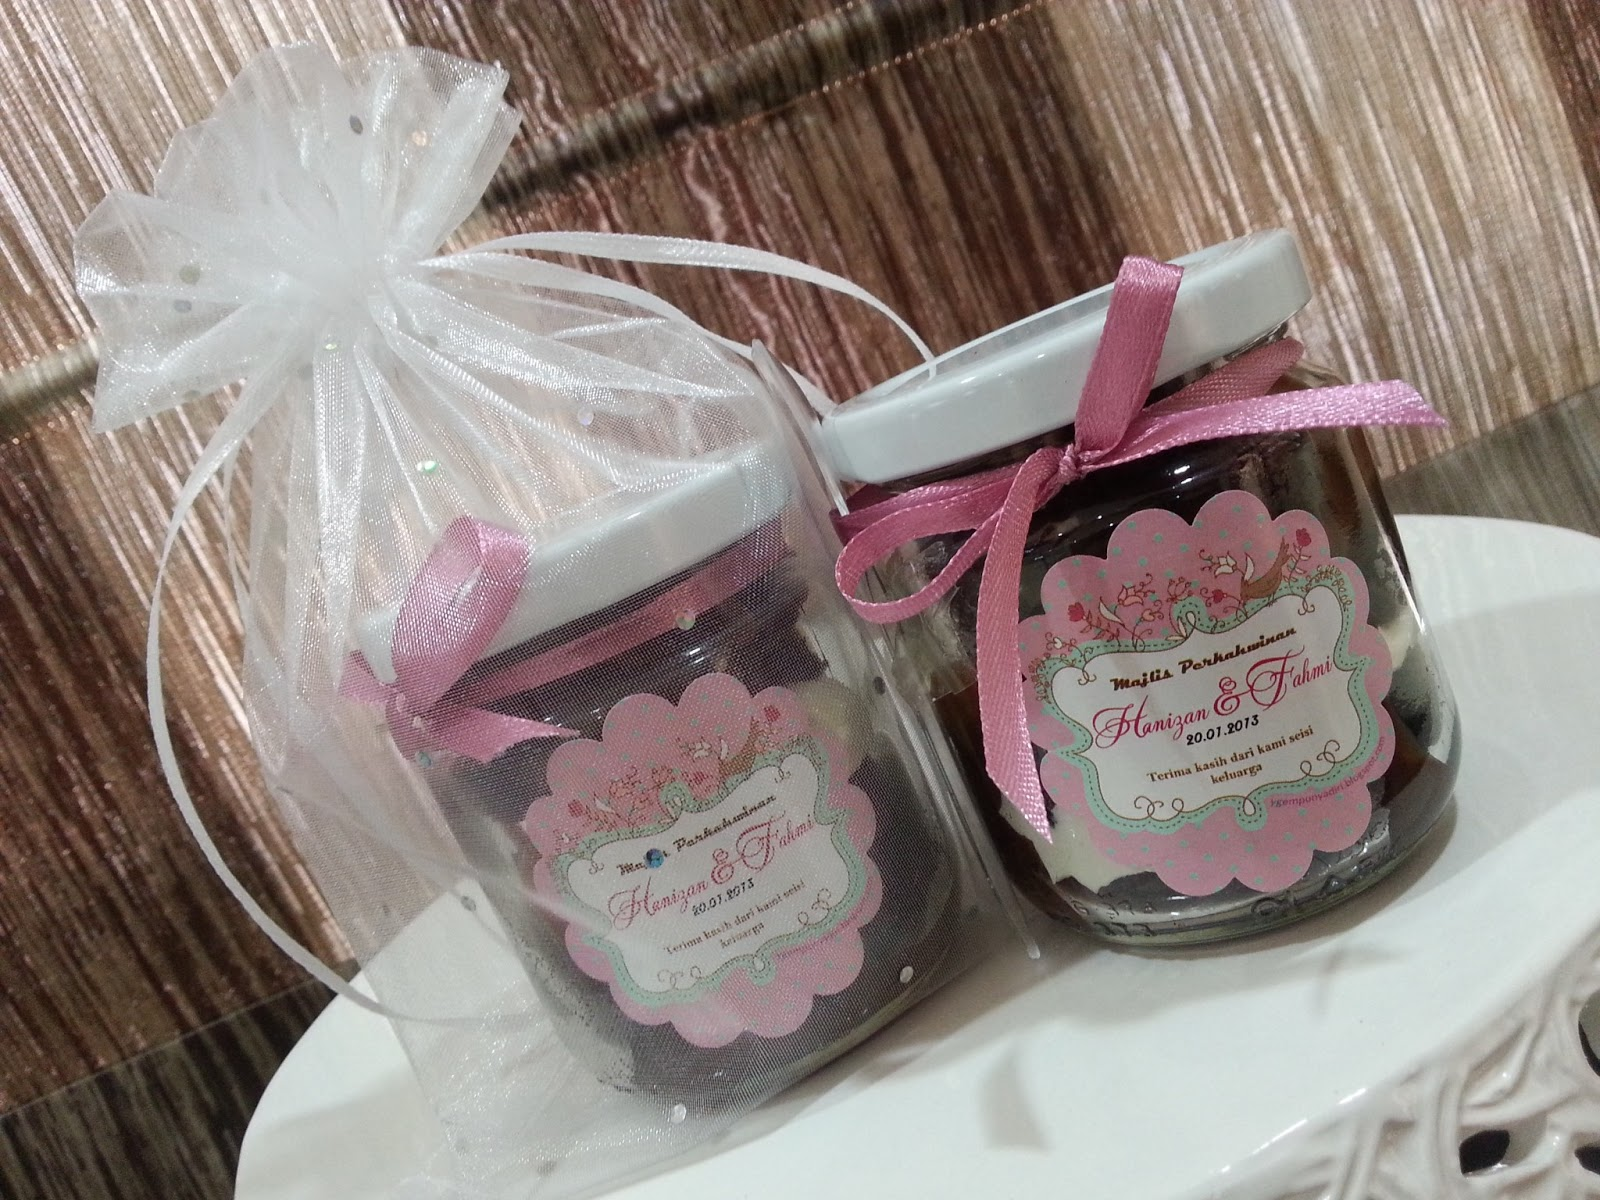 Door Gift For Wedding: Wedding Door Gift Cake In Jar